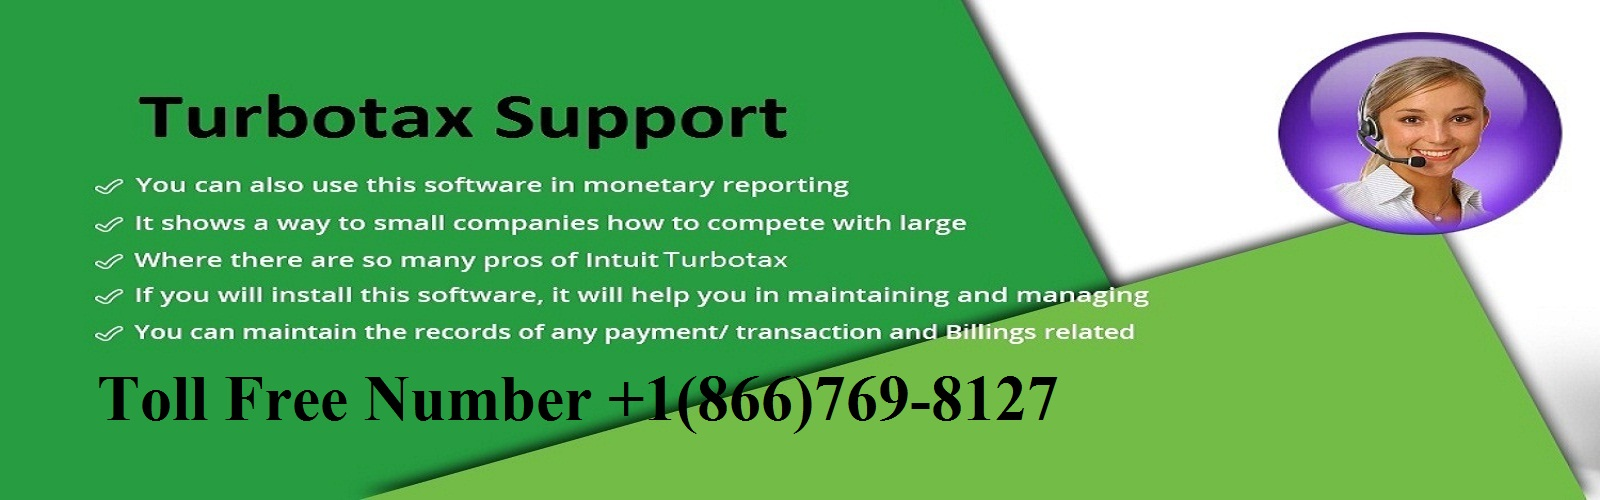 turbotax support number phone +1(866)769-8127 ~ help number